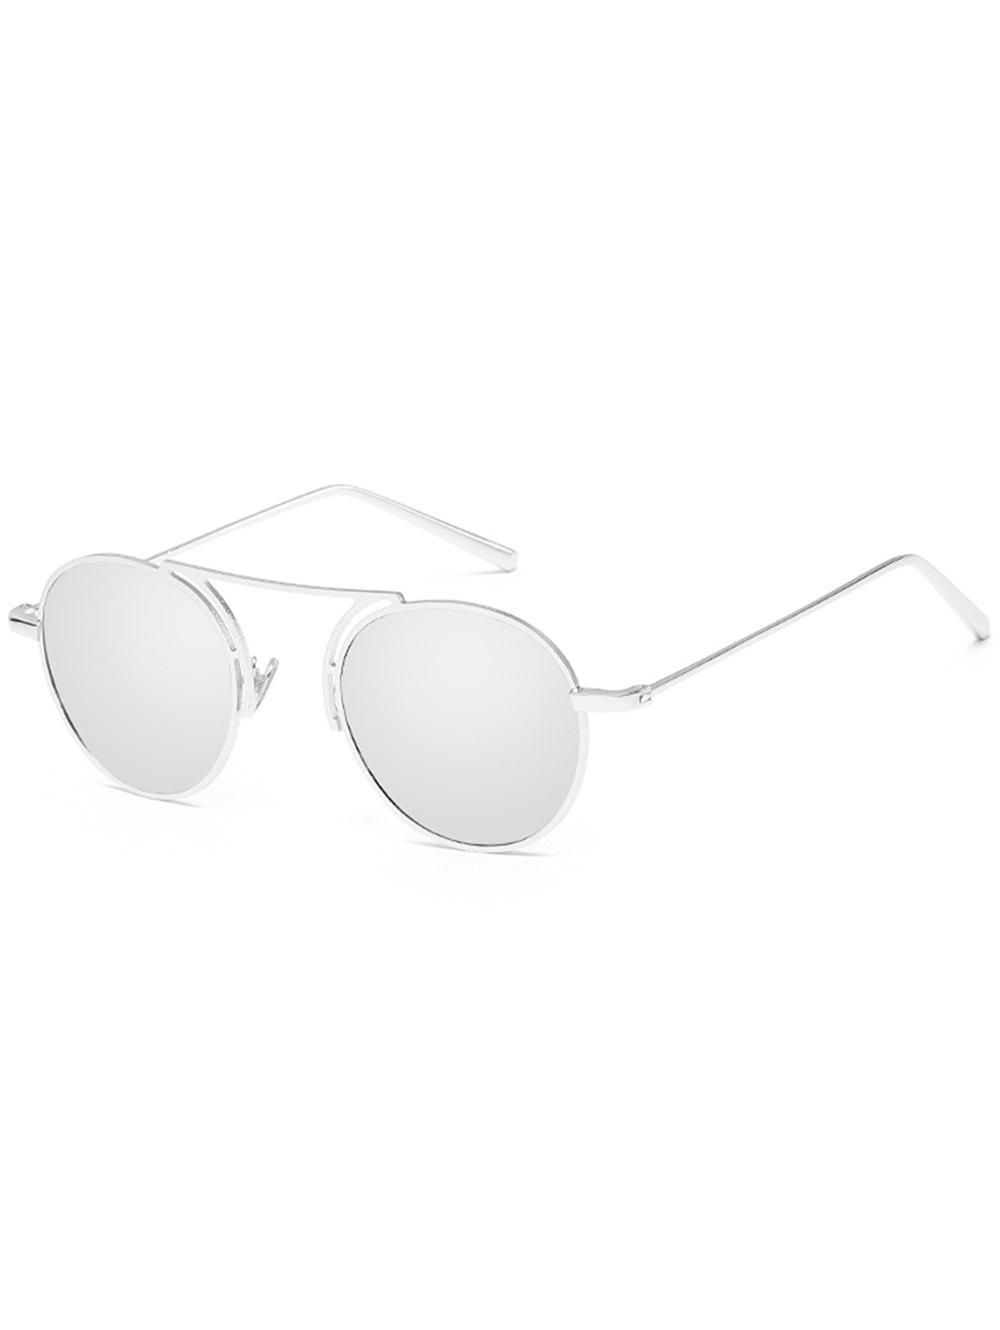 Stylish Thin Metal Frame Oval Sunglasses - PLATINUM